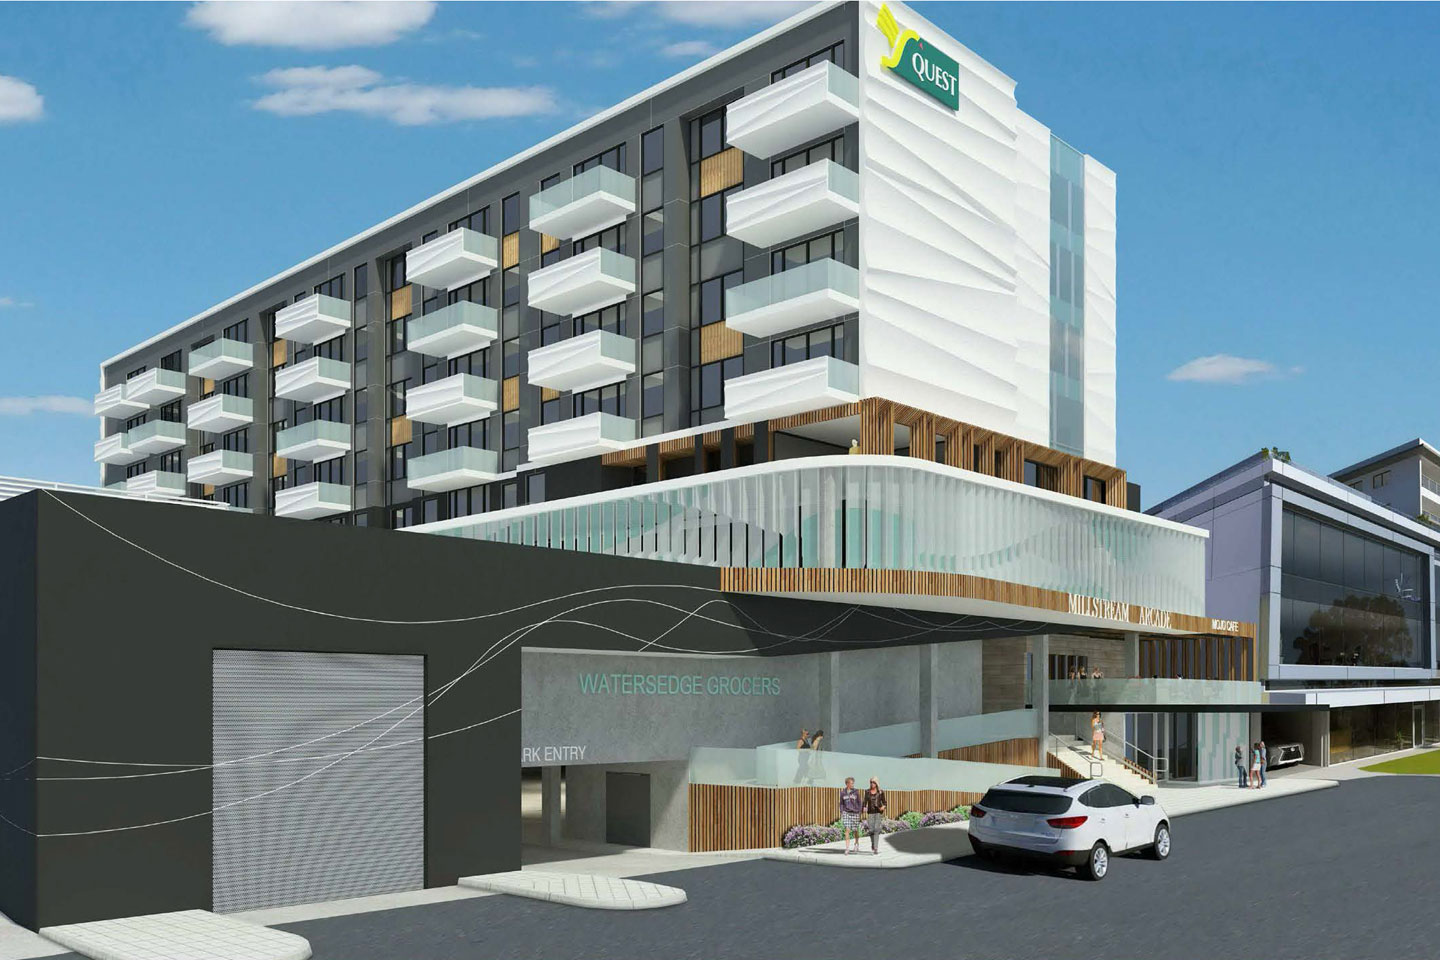 Quest hotel approved for south perth business news for Landscape architecture courses perth